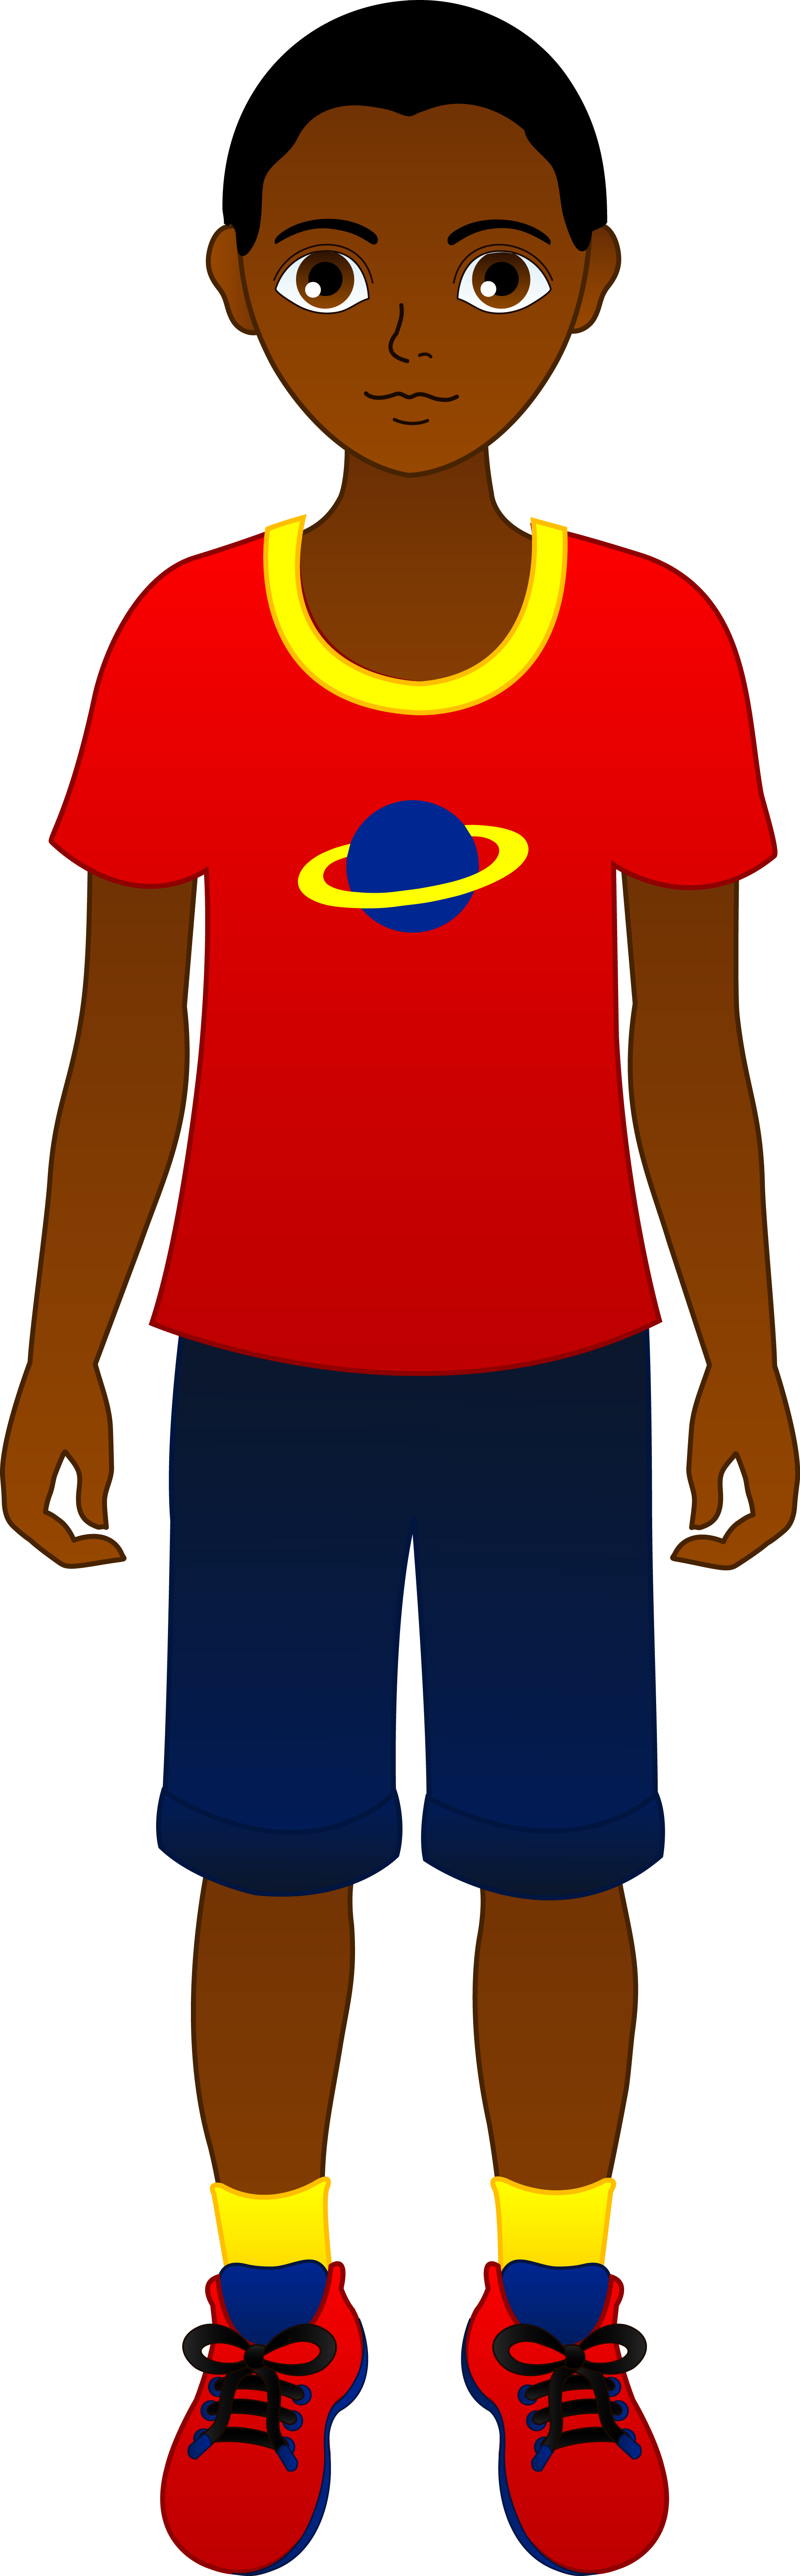 Free Black Boy Picture, Download Free Clip Art, Free Clip.